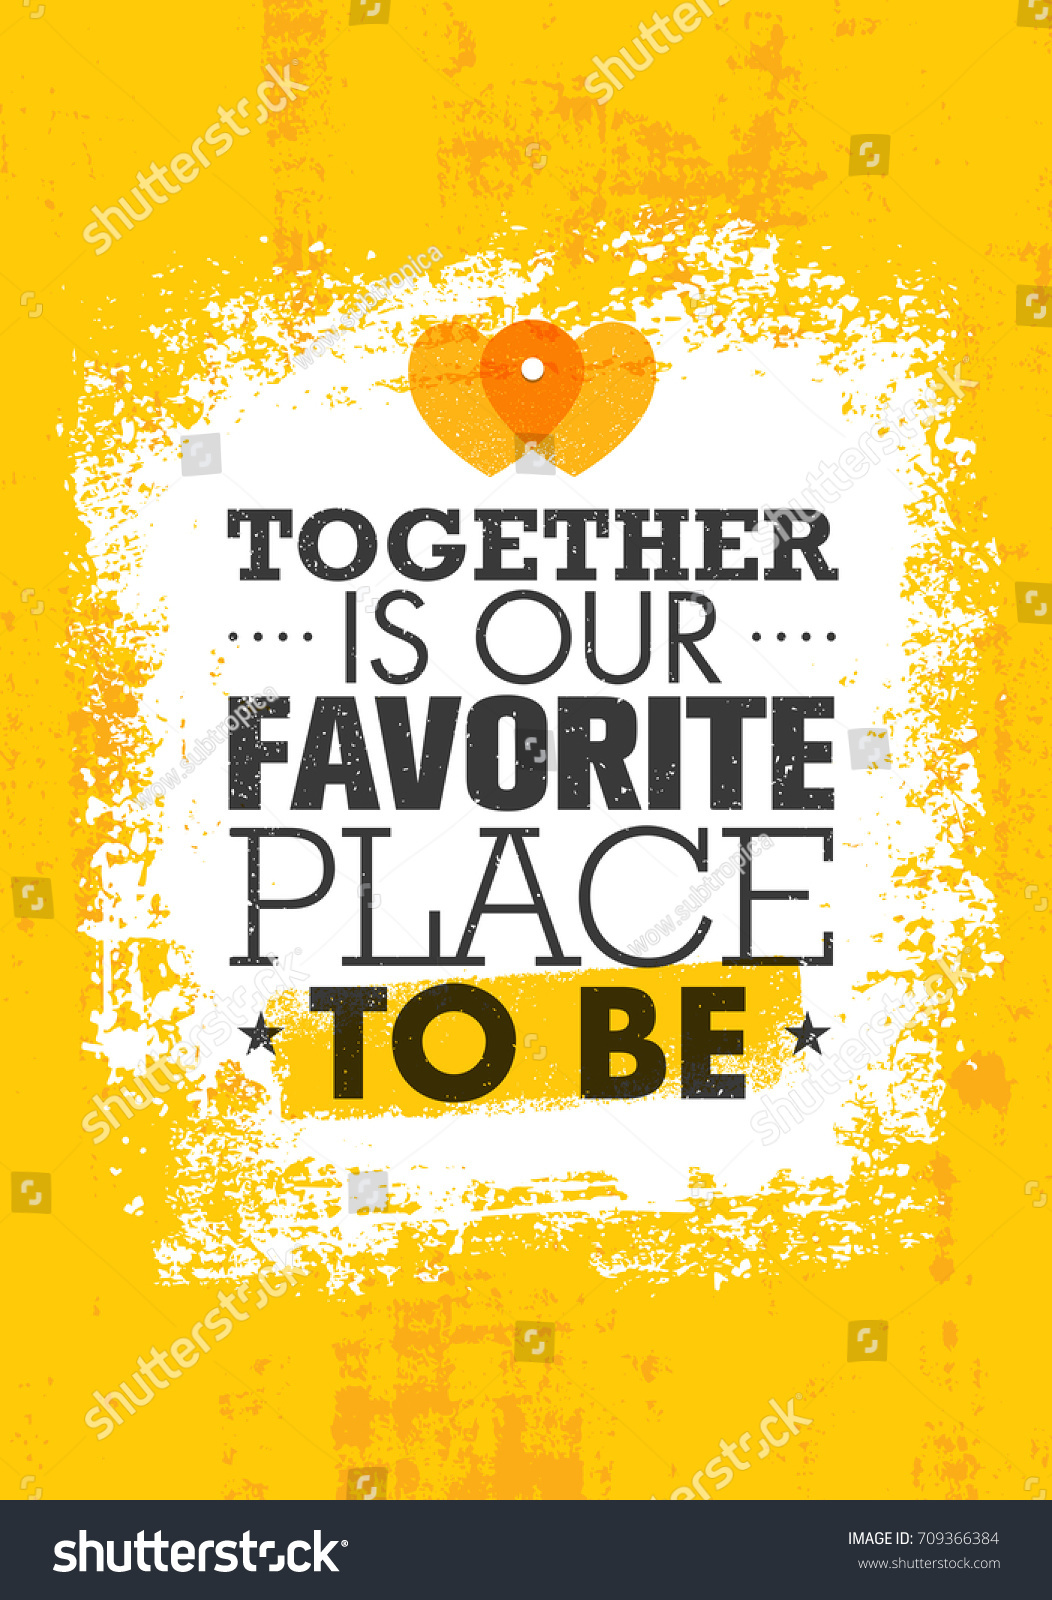 Together Our Favorite Place Be Inspiring Stock Vector Royalty Free